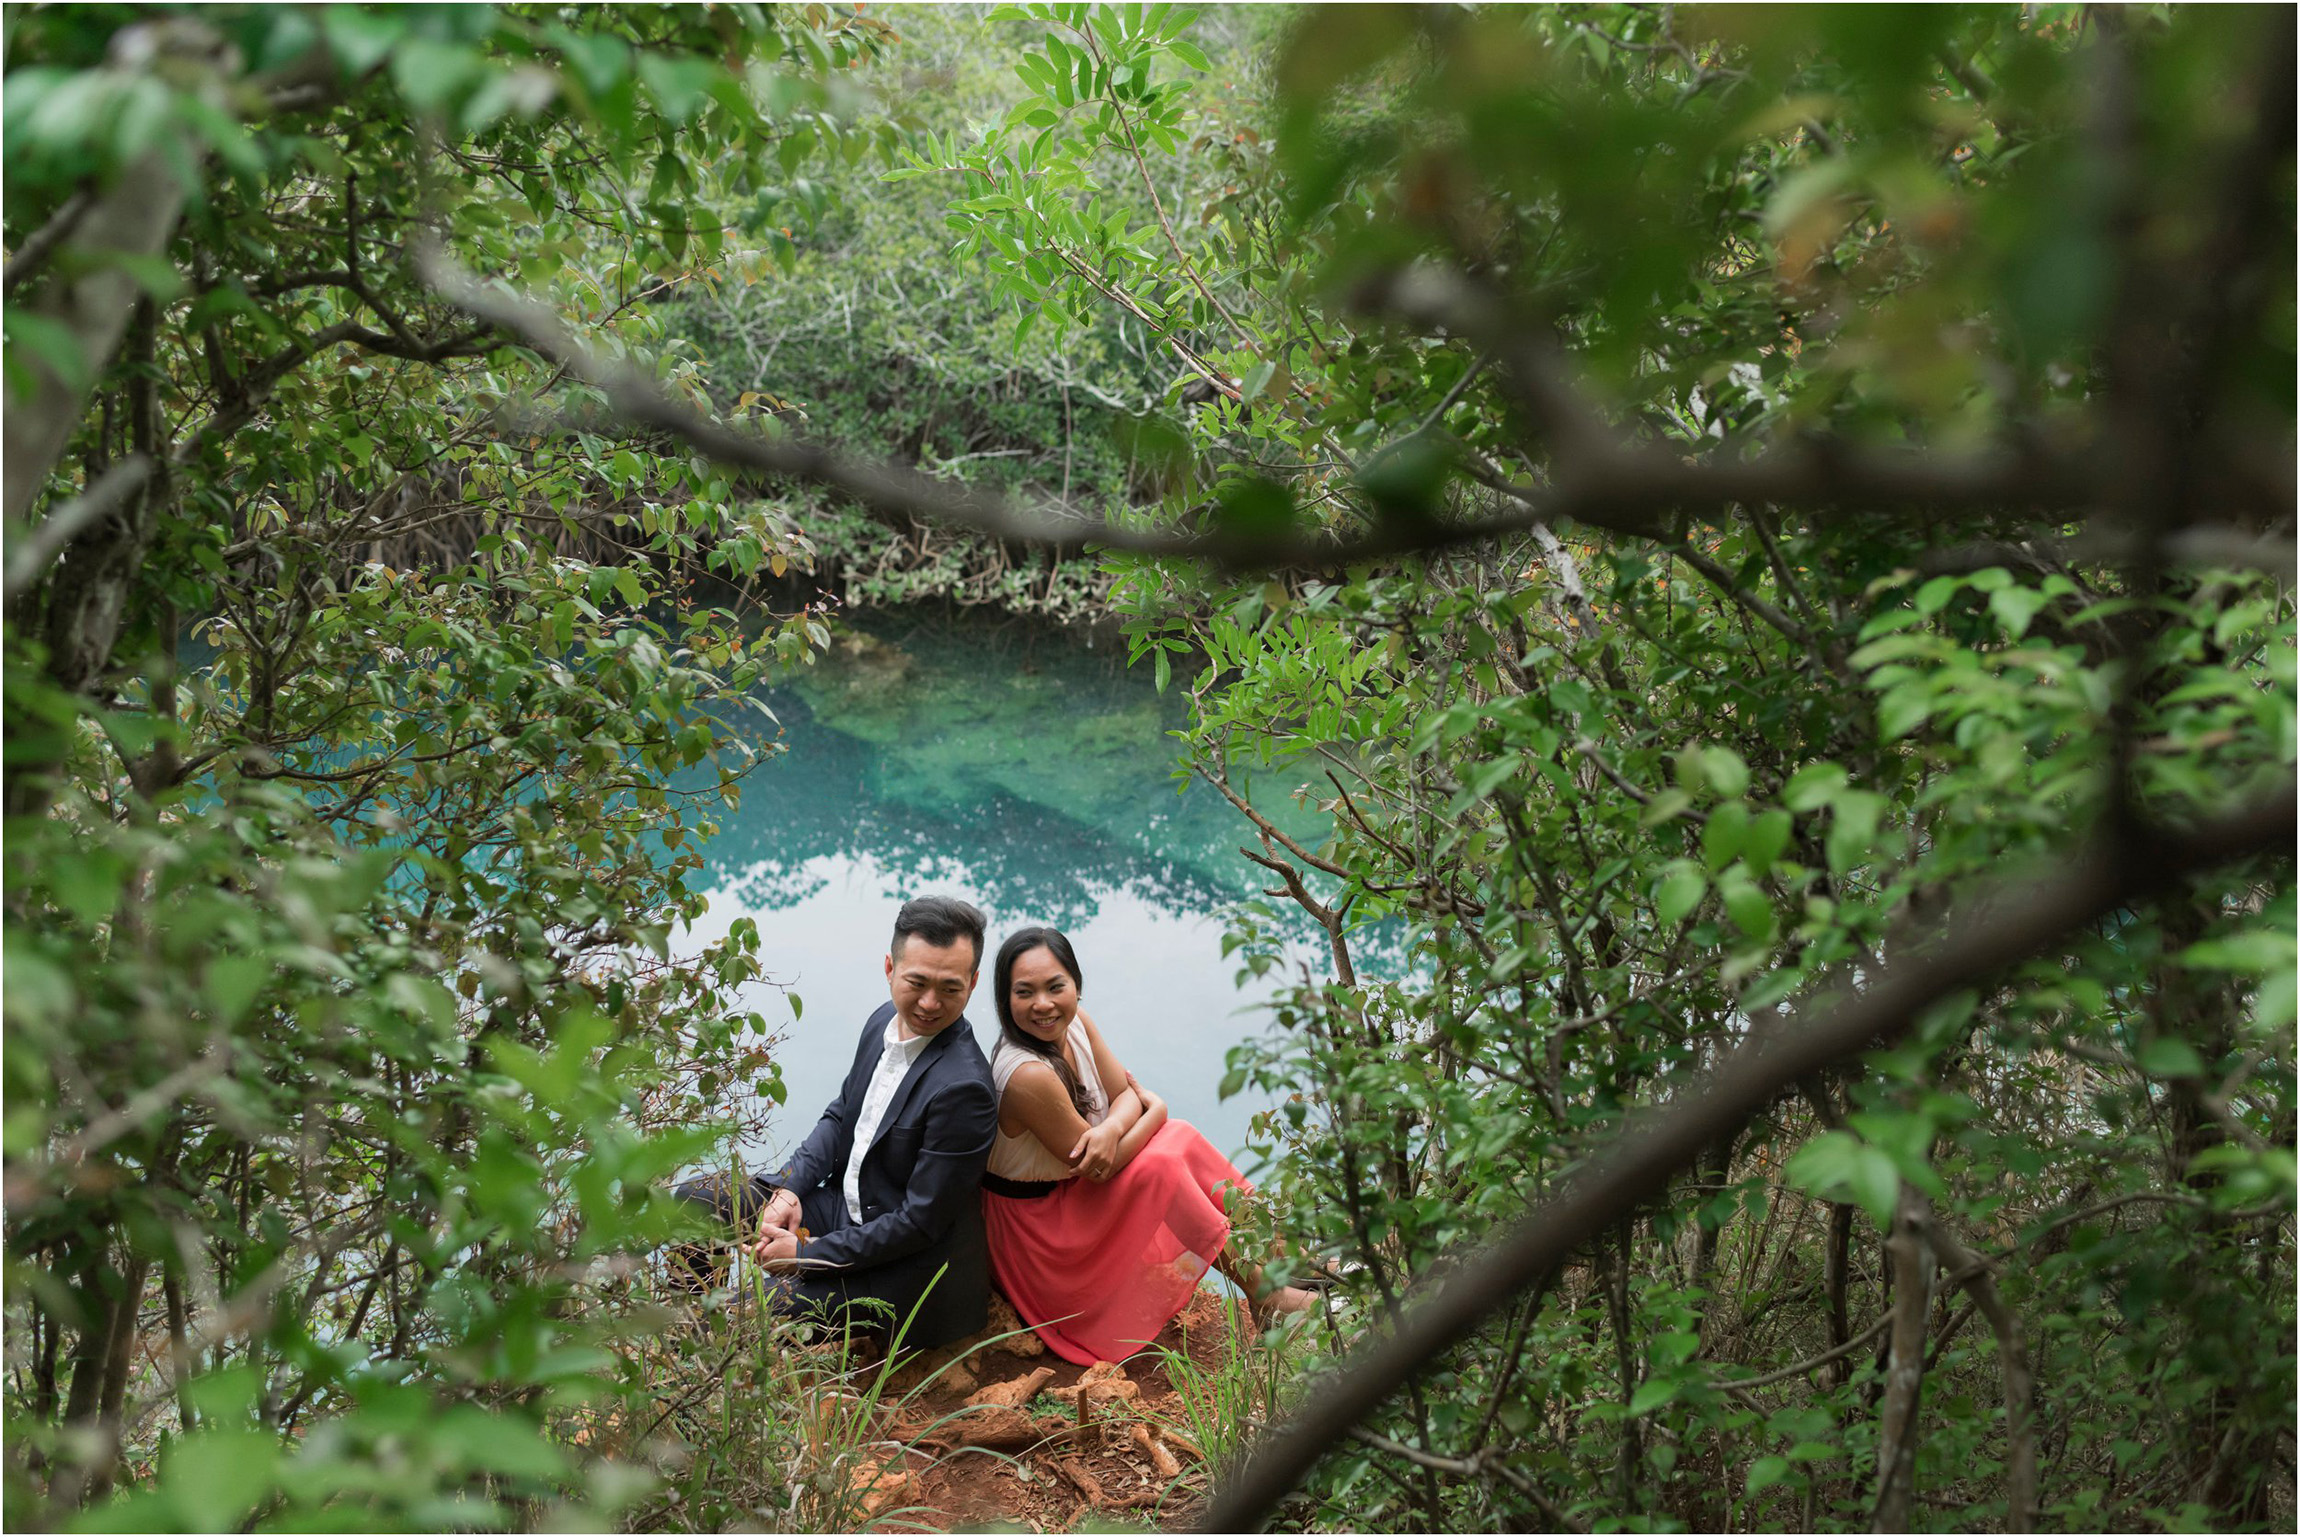 ©FianderFoto_Bermuda Engagement Photographer_Tom Moores Jungle_Owen_Chanson_024.jpg